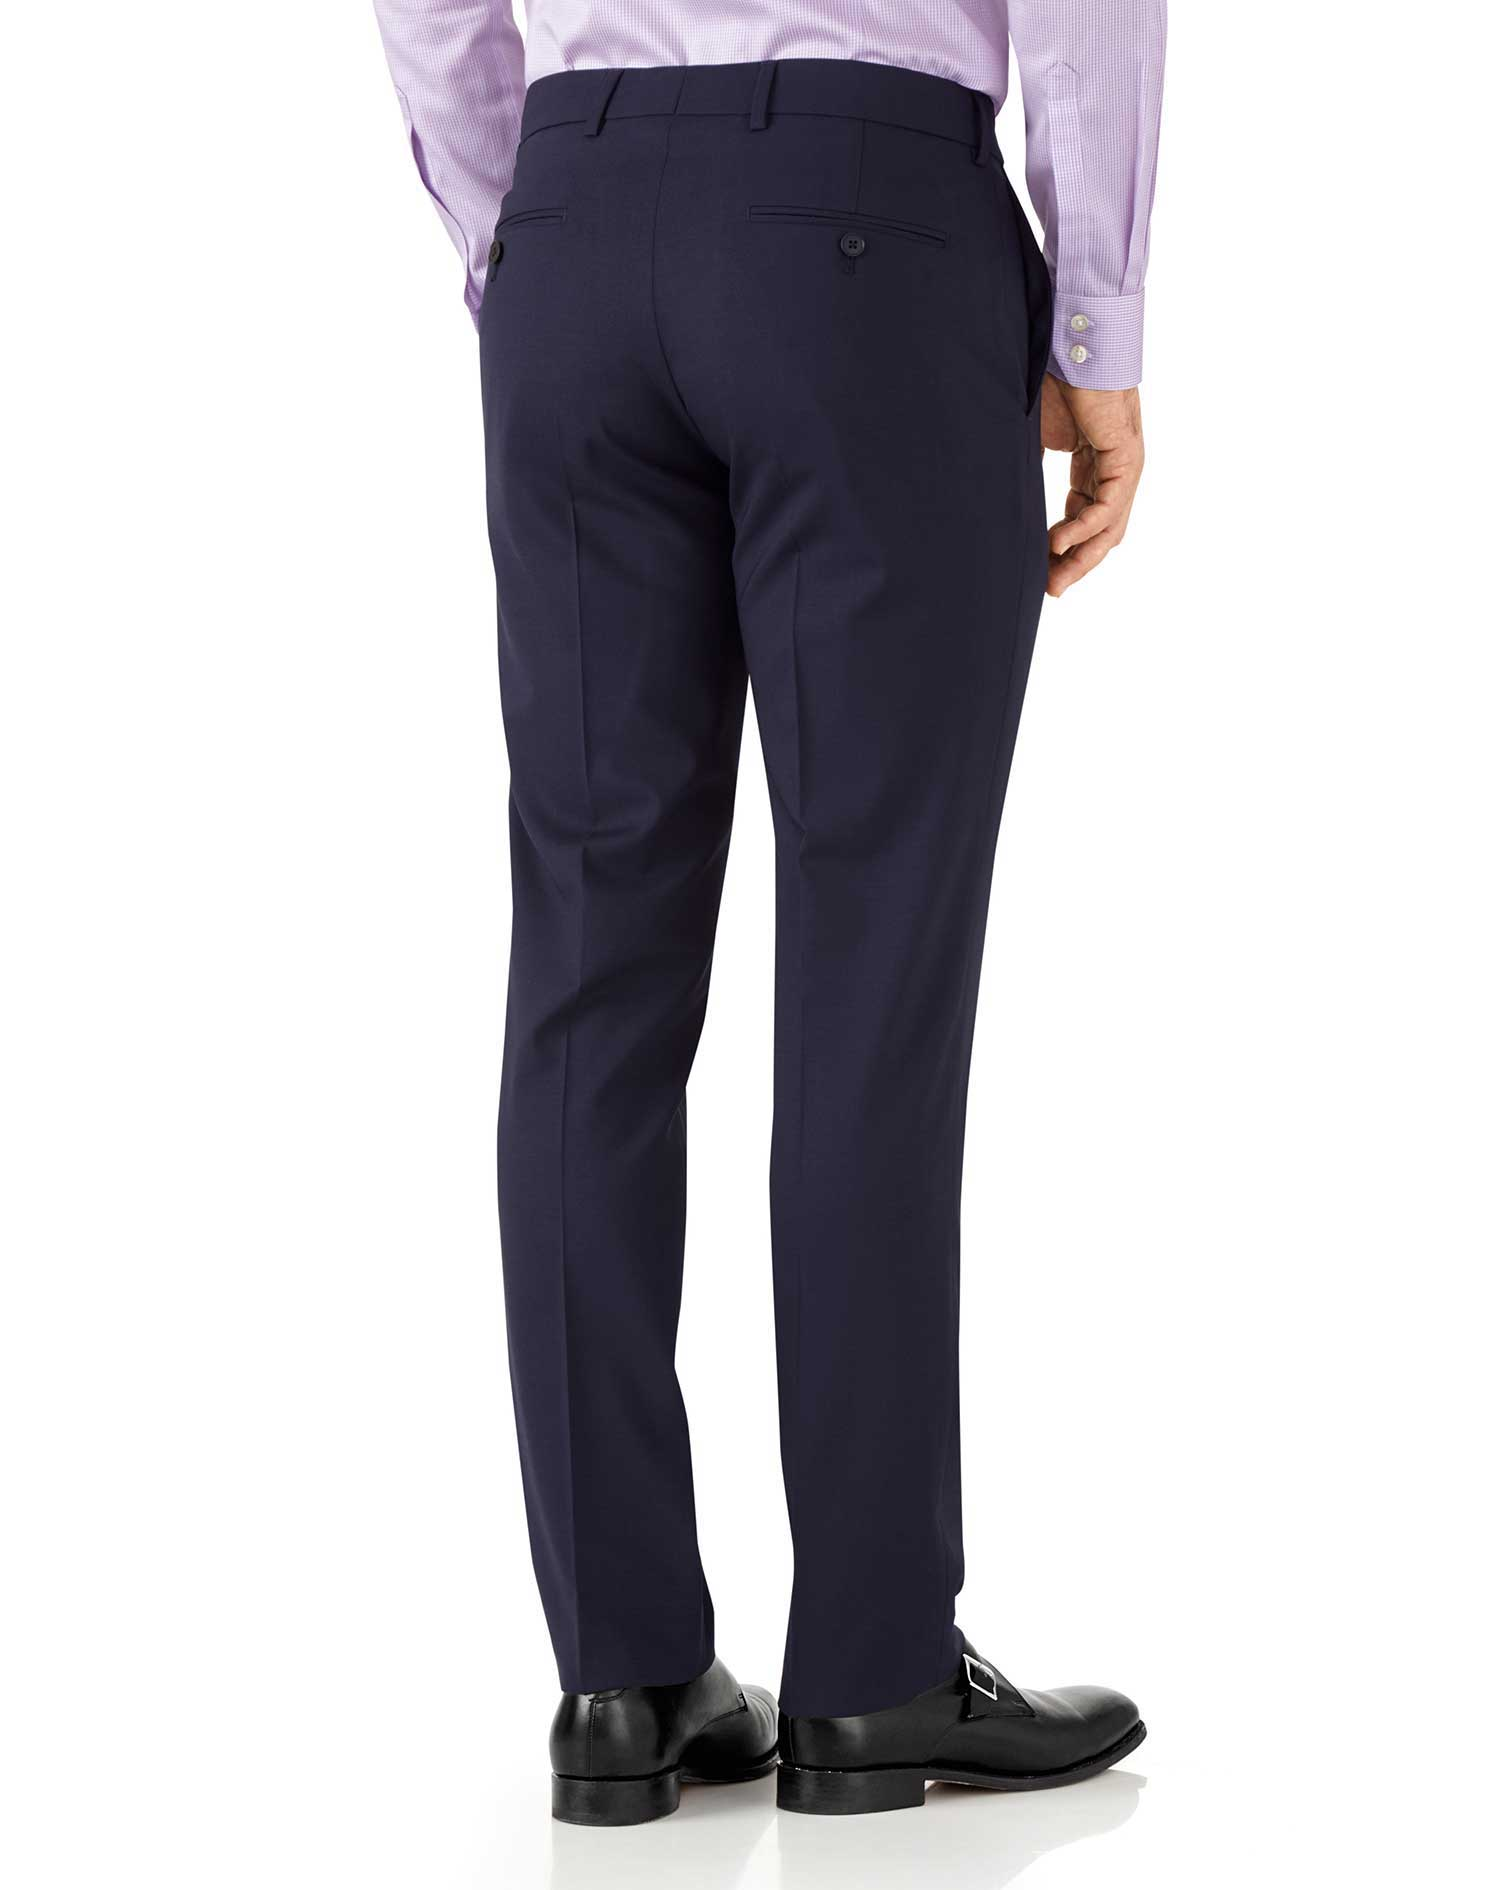 Navy slim fit performance suit pants